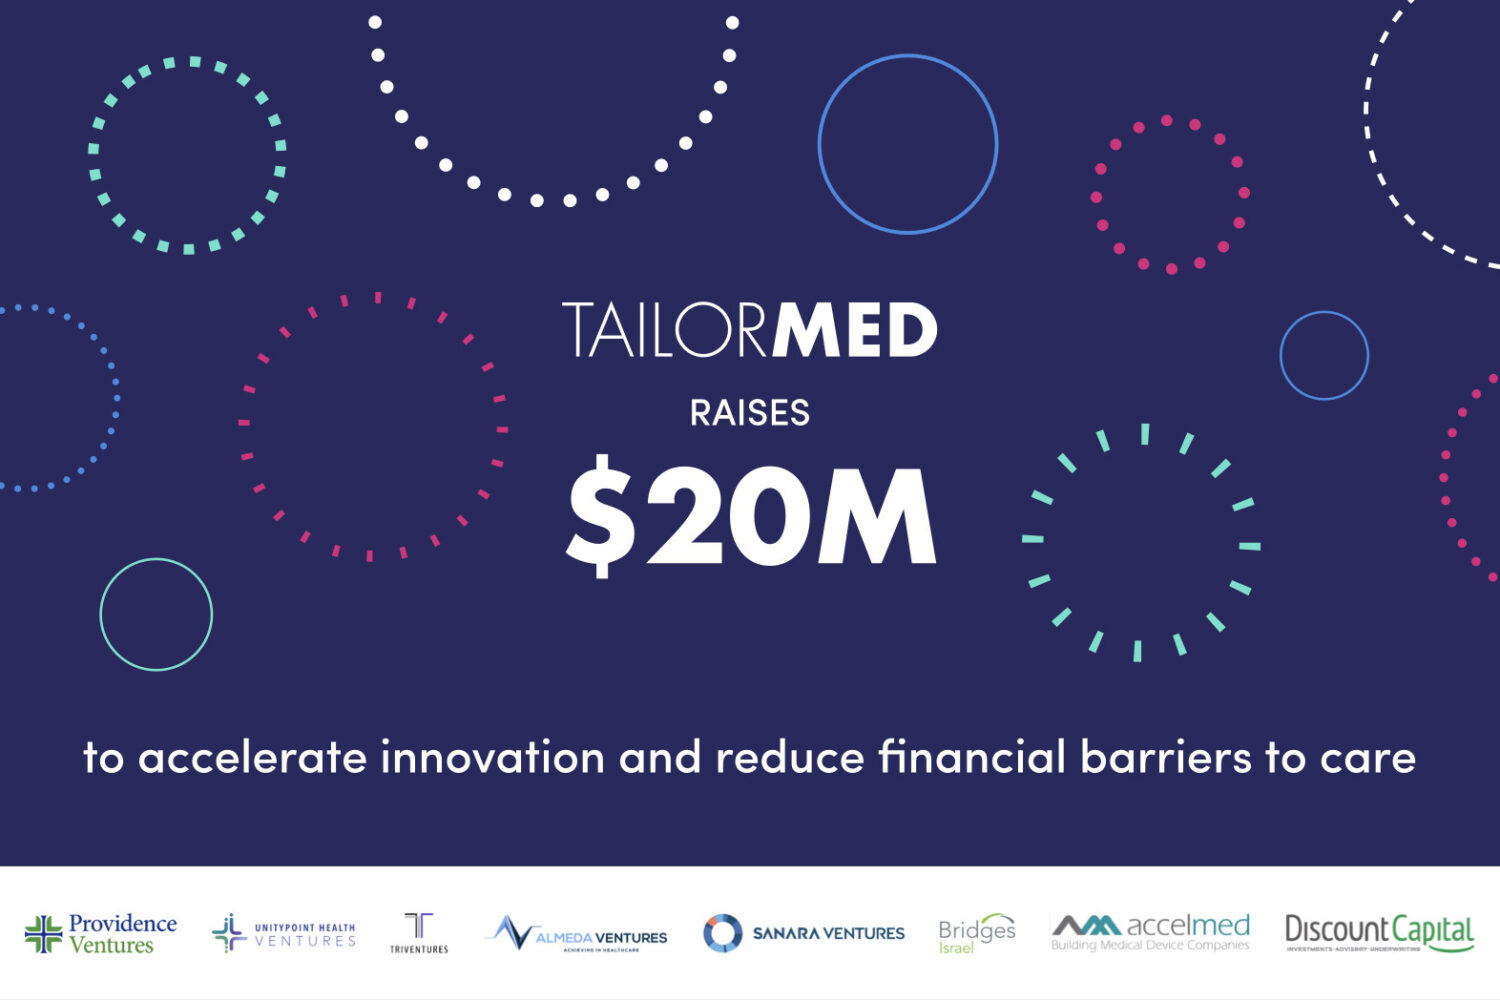 TailorMed Nabs $20M for Patient Financial Navigation Platform, Backed by Providence Ventures